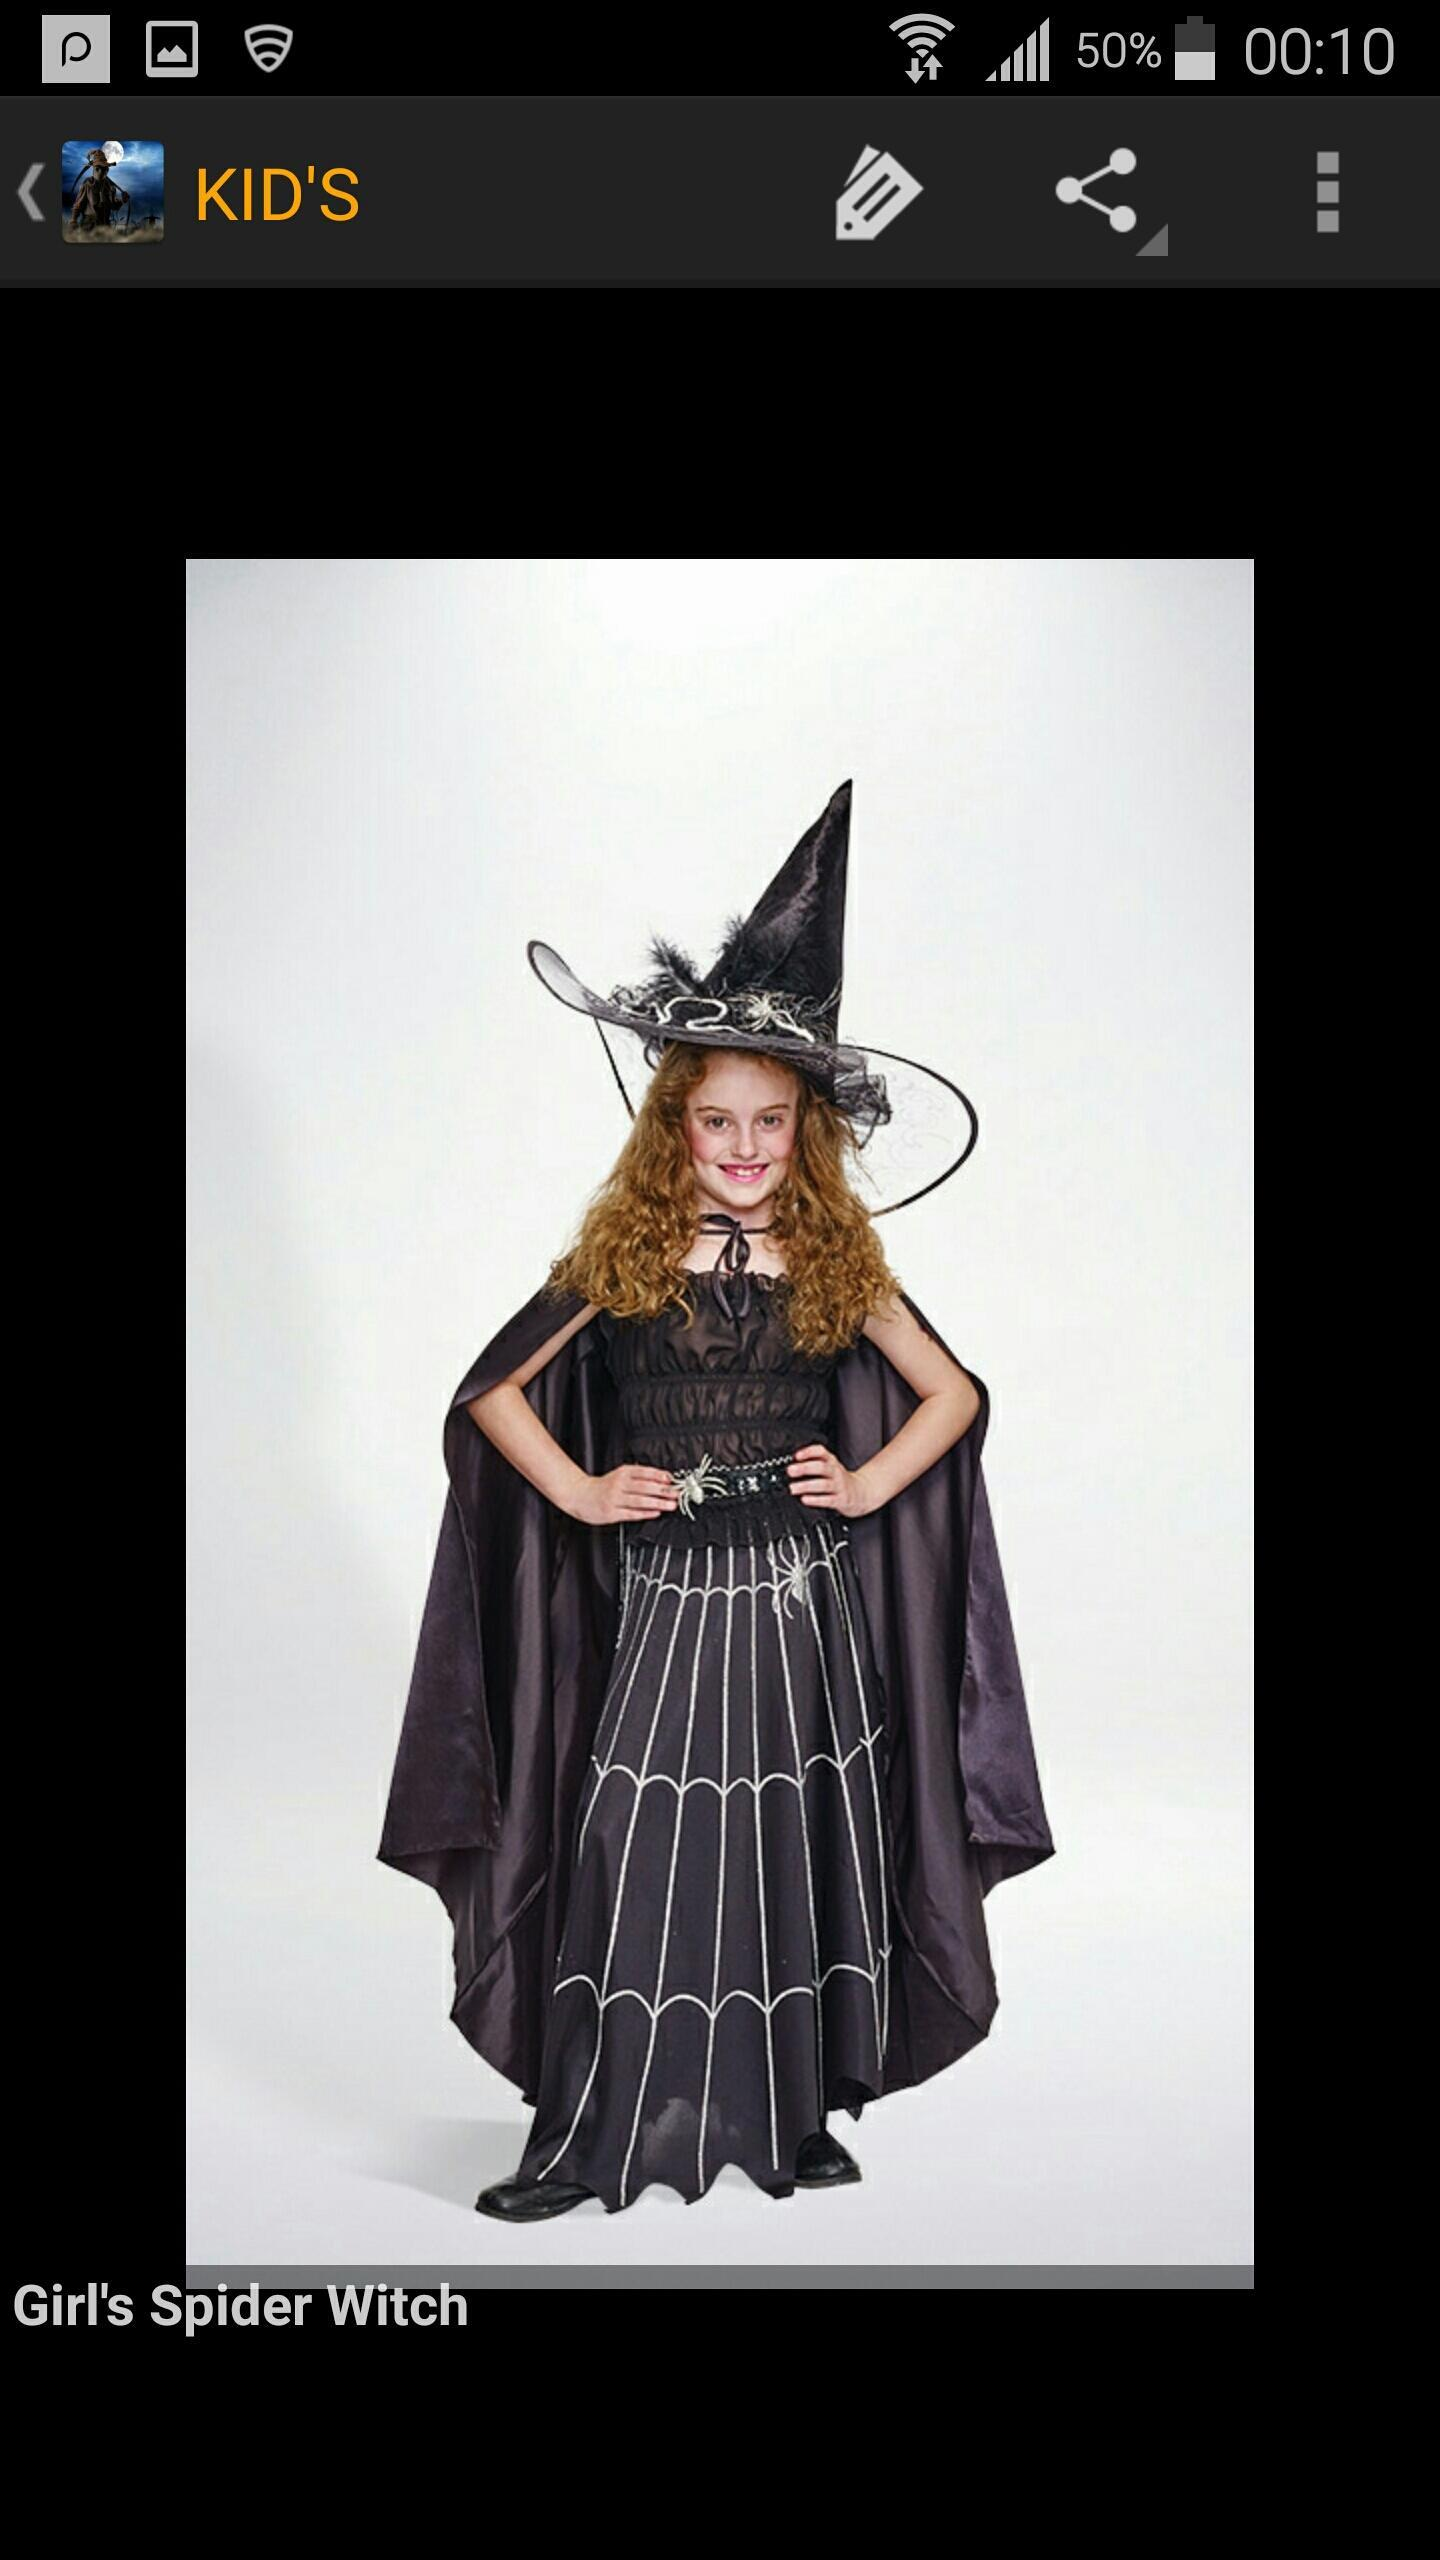 Best Halloween Costume Ideas 2020.Awesome Halloween Costume Ideas 2020 For Android Apk Download